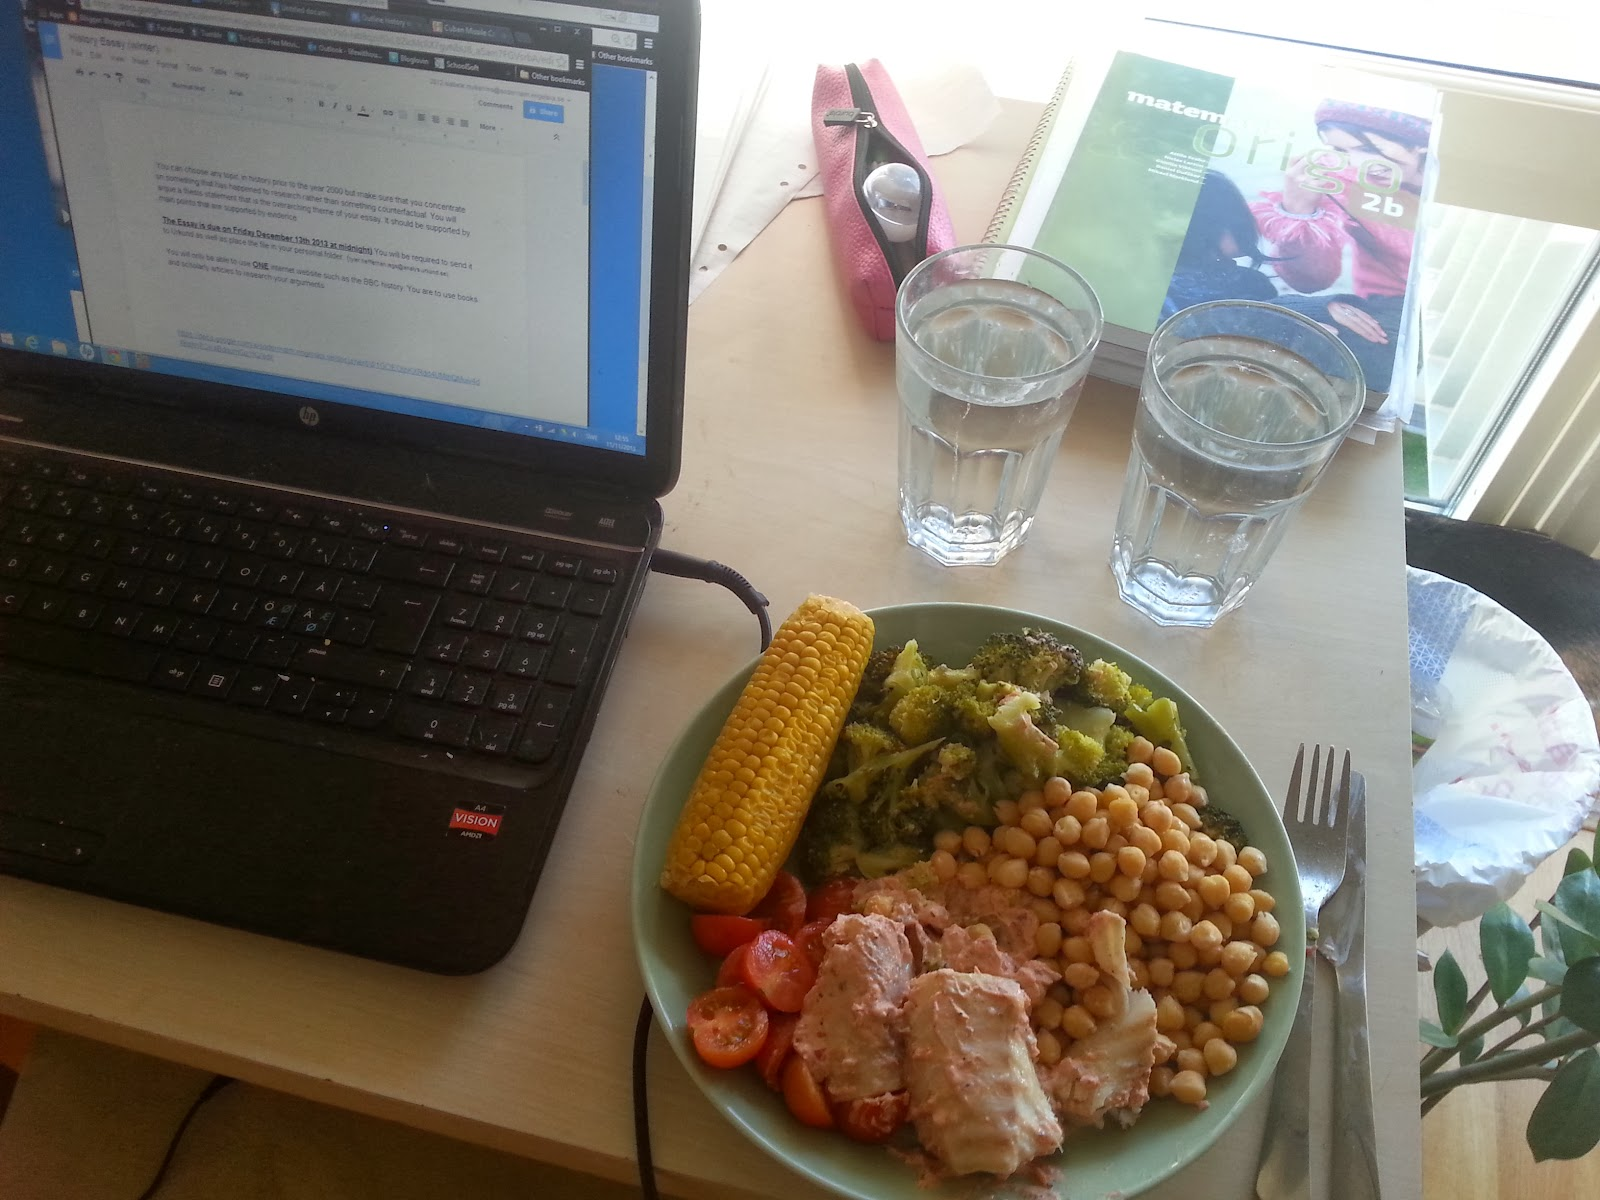 A Life without Anorexia: Food diary